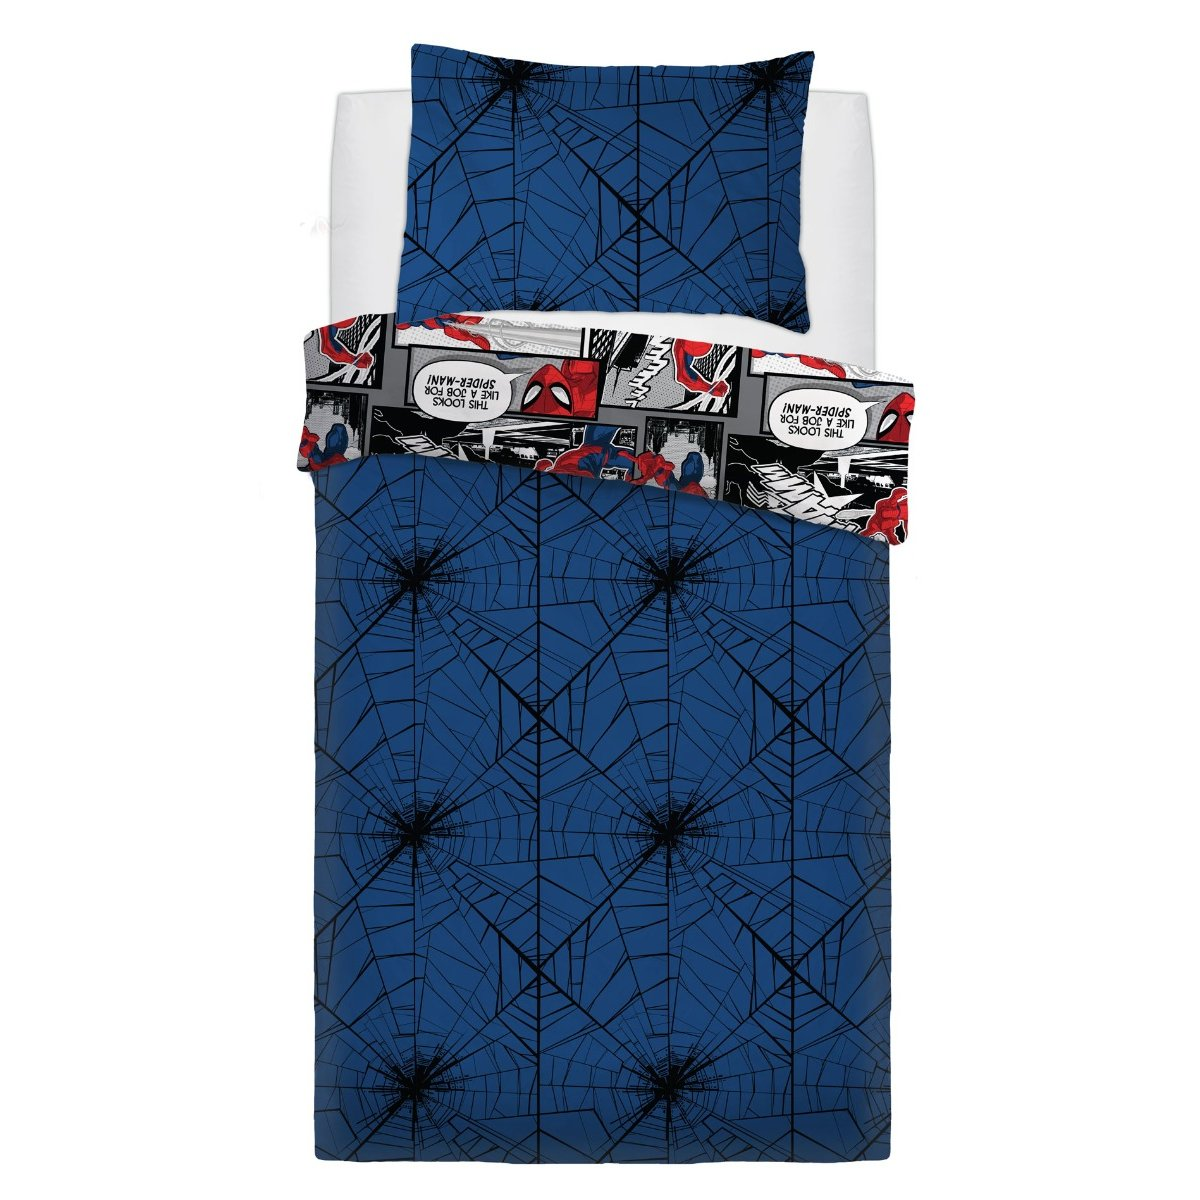 SpiderMan Webs Bedding - Reversible Duvet Cover and Pillowcase Set